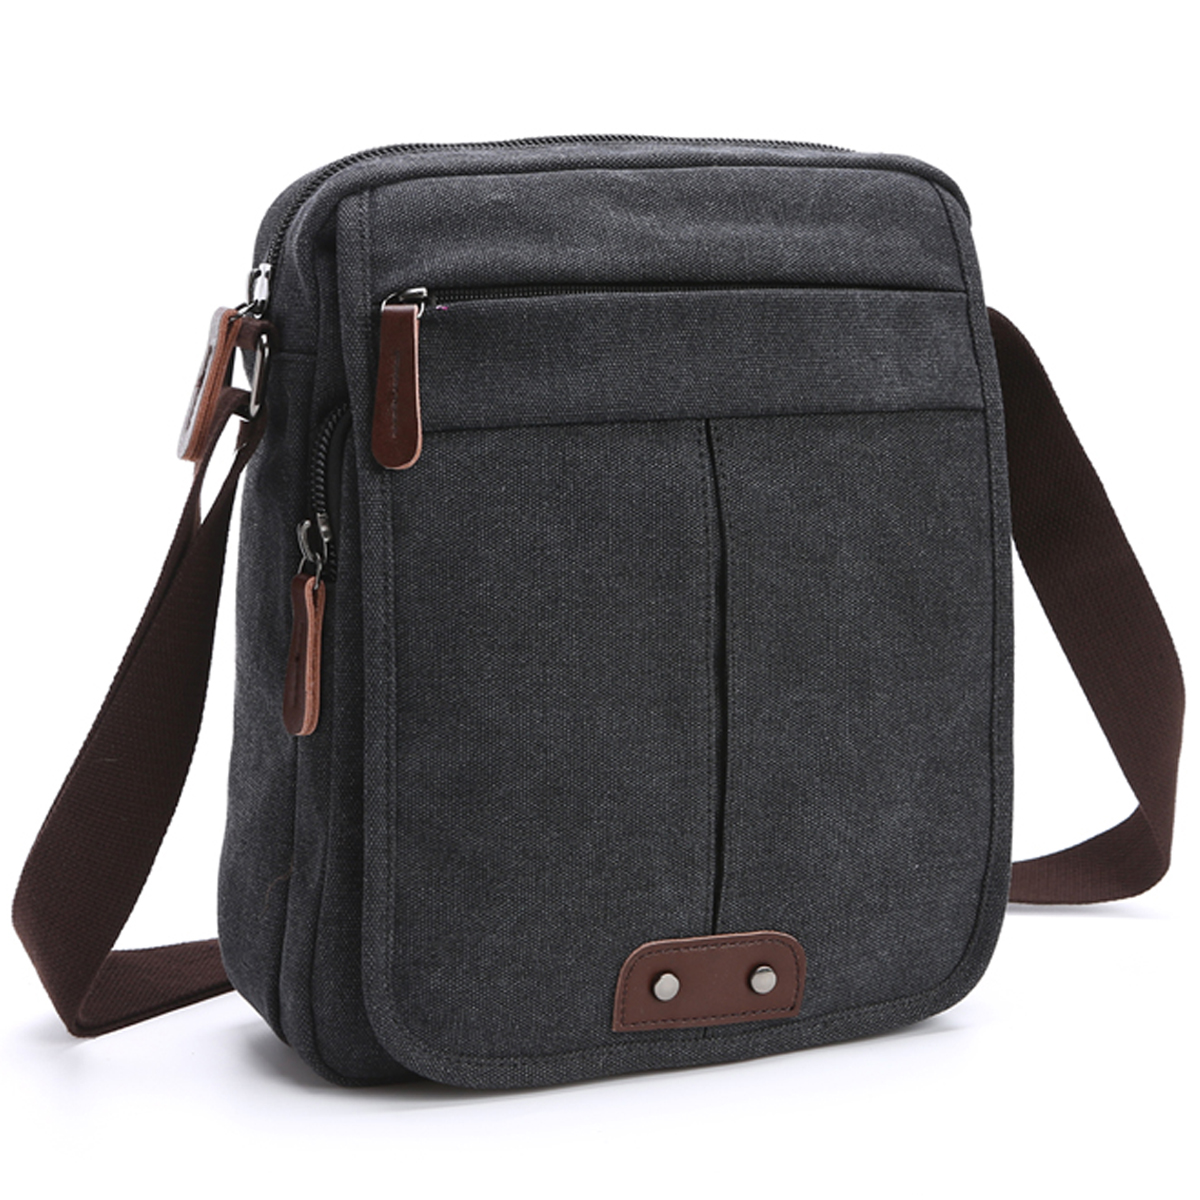 Dasein Vintage Unisex Canvas Messenger Bag/Cross body with Front Snap Flap